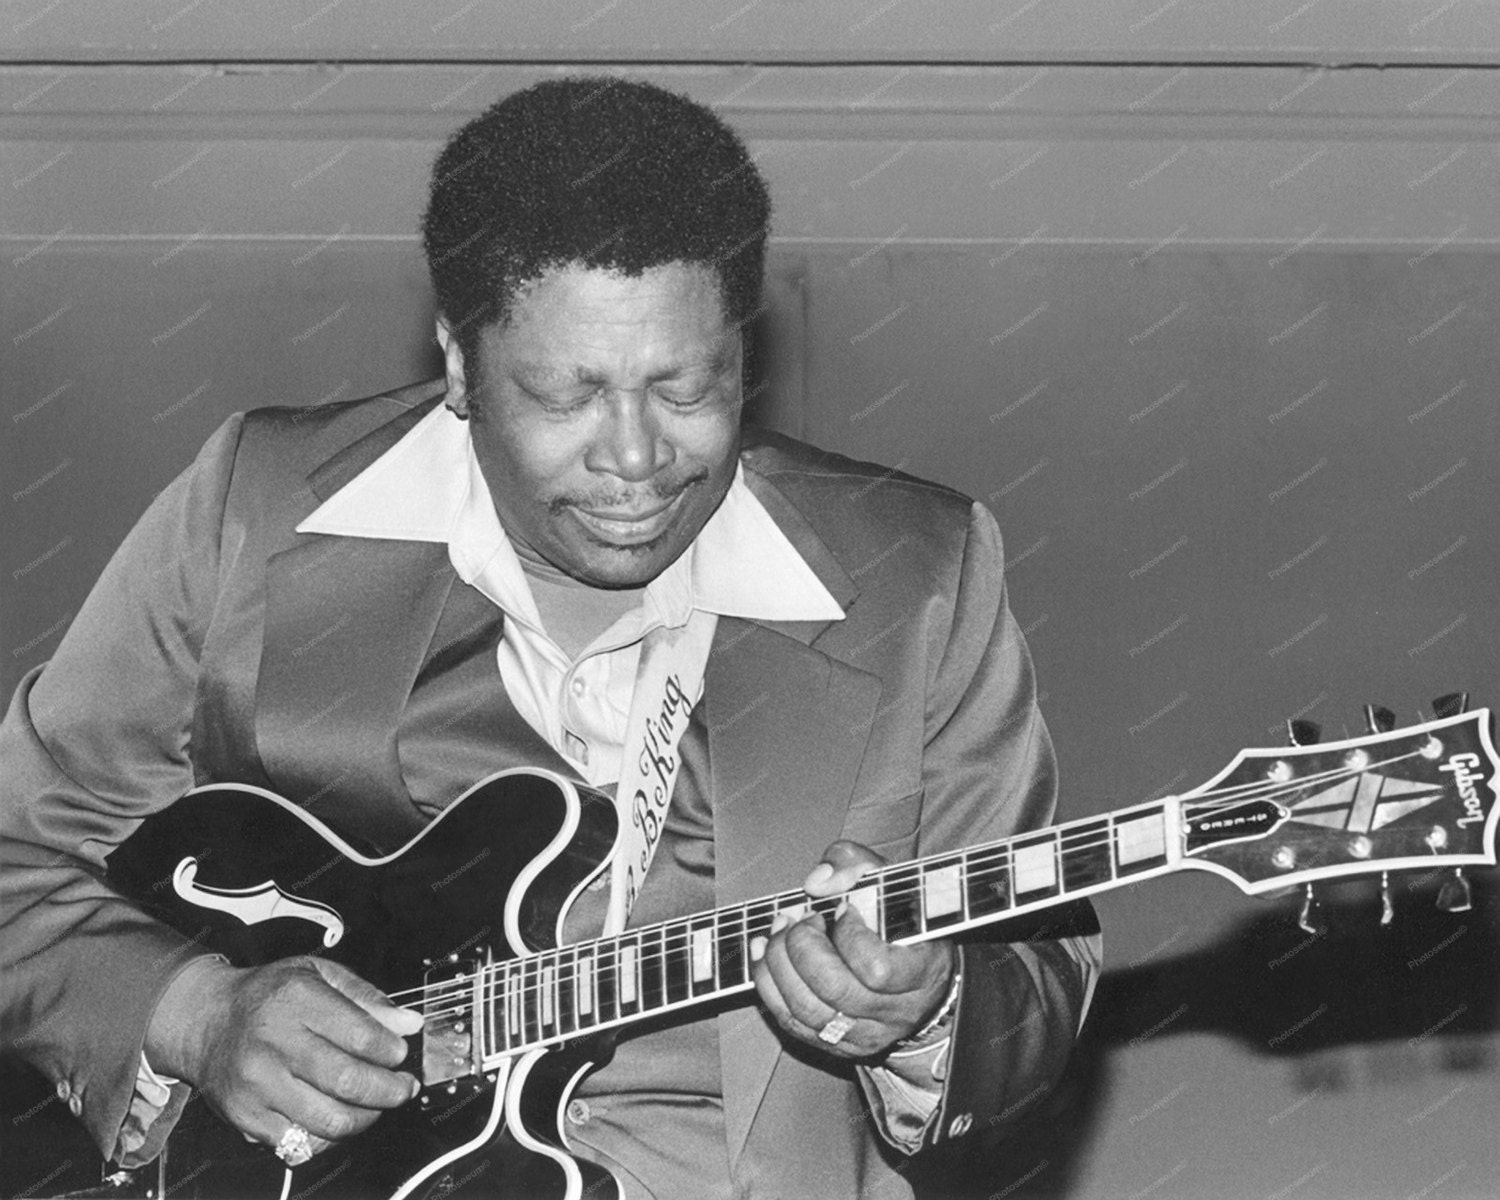 bb king playing his lucille gibson es 335 guitar by guitarspatents. Black Bedroom Furniture Sets. Home Design Ideas